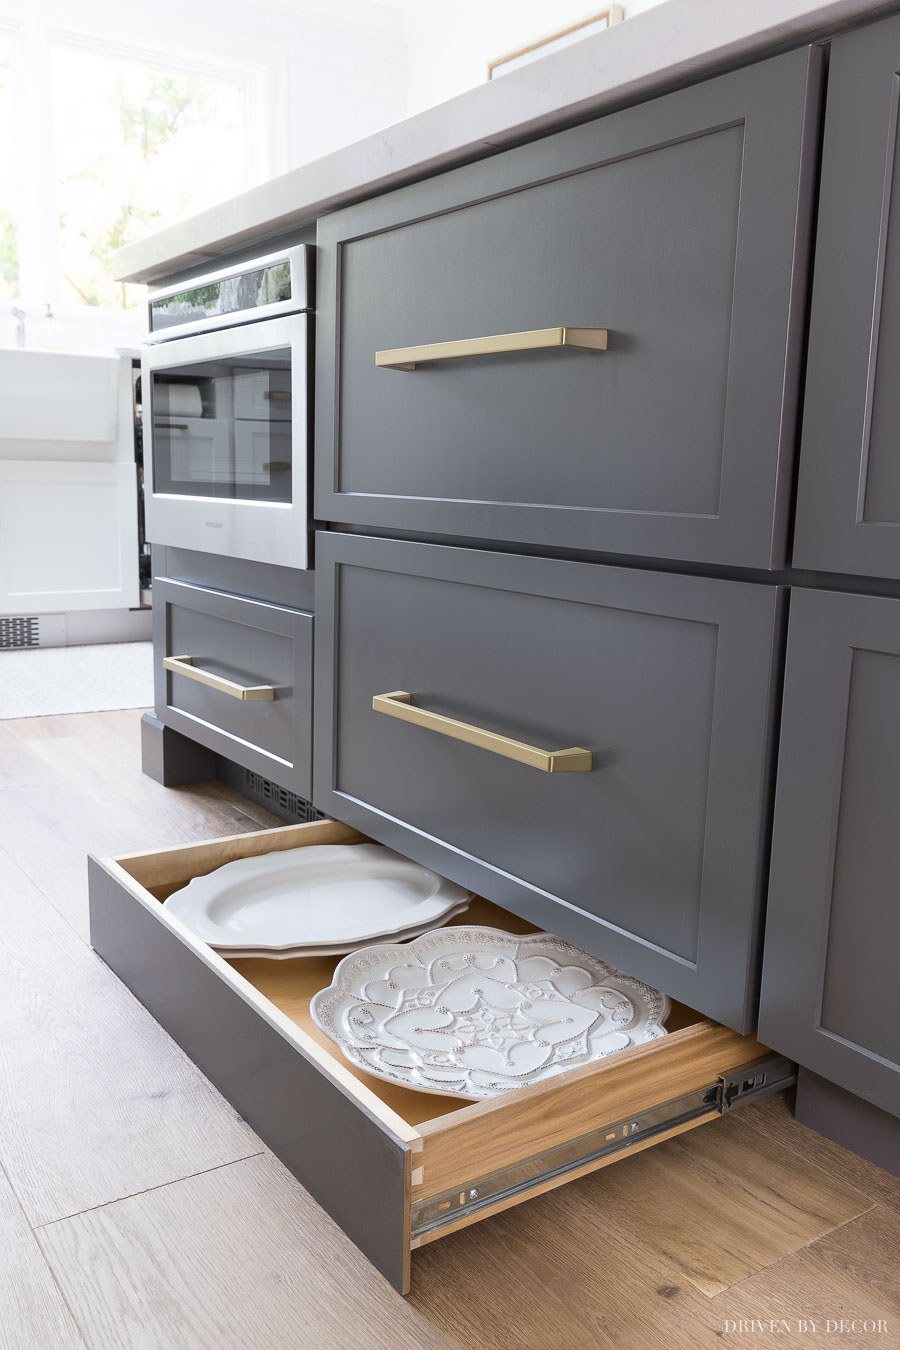 A push on the toekick with your foot reveals a hidden toekick drawer with shallow storage space for trays and other large, hard to store kitchen items!